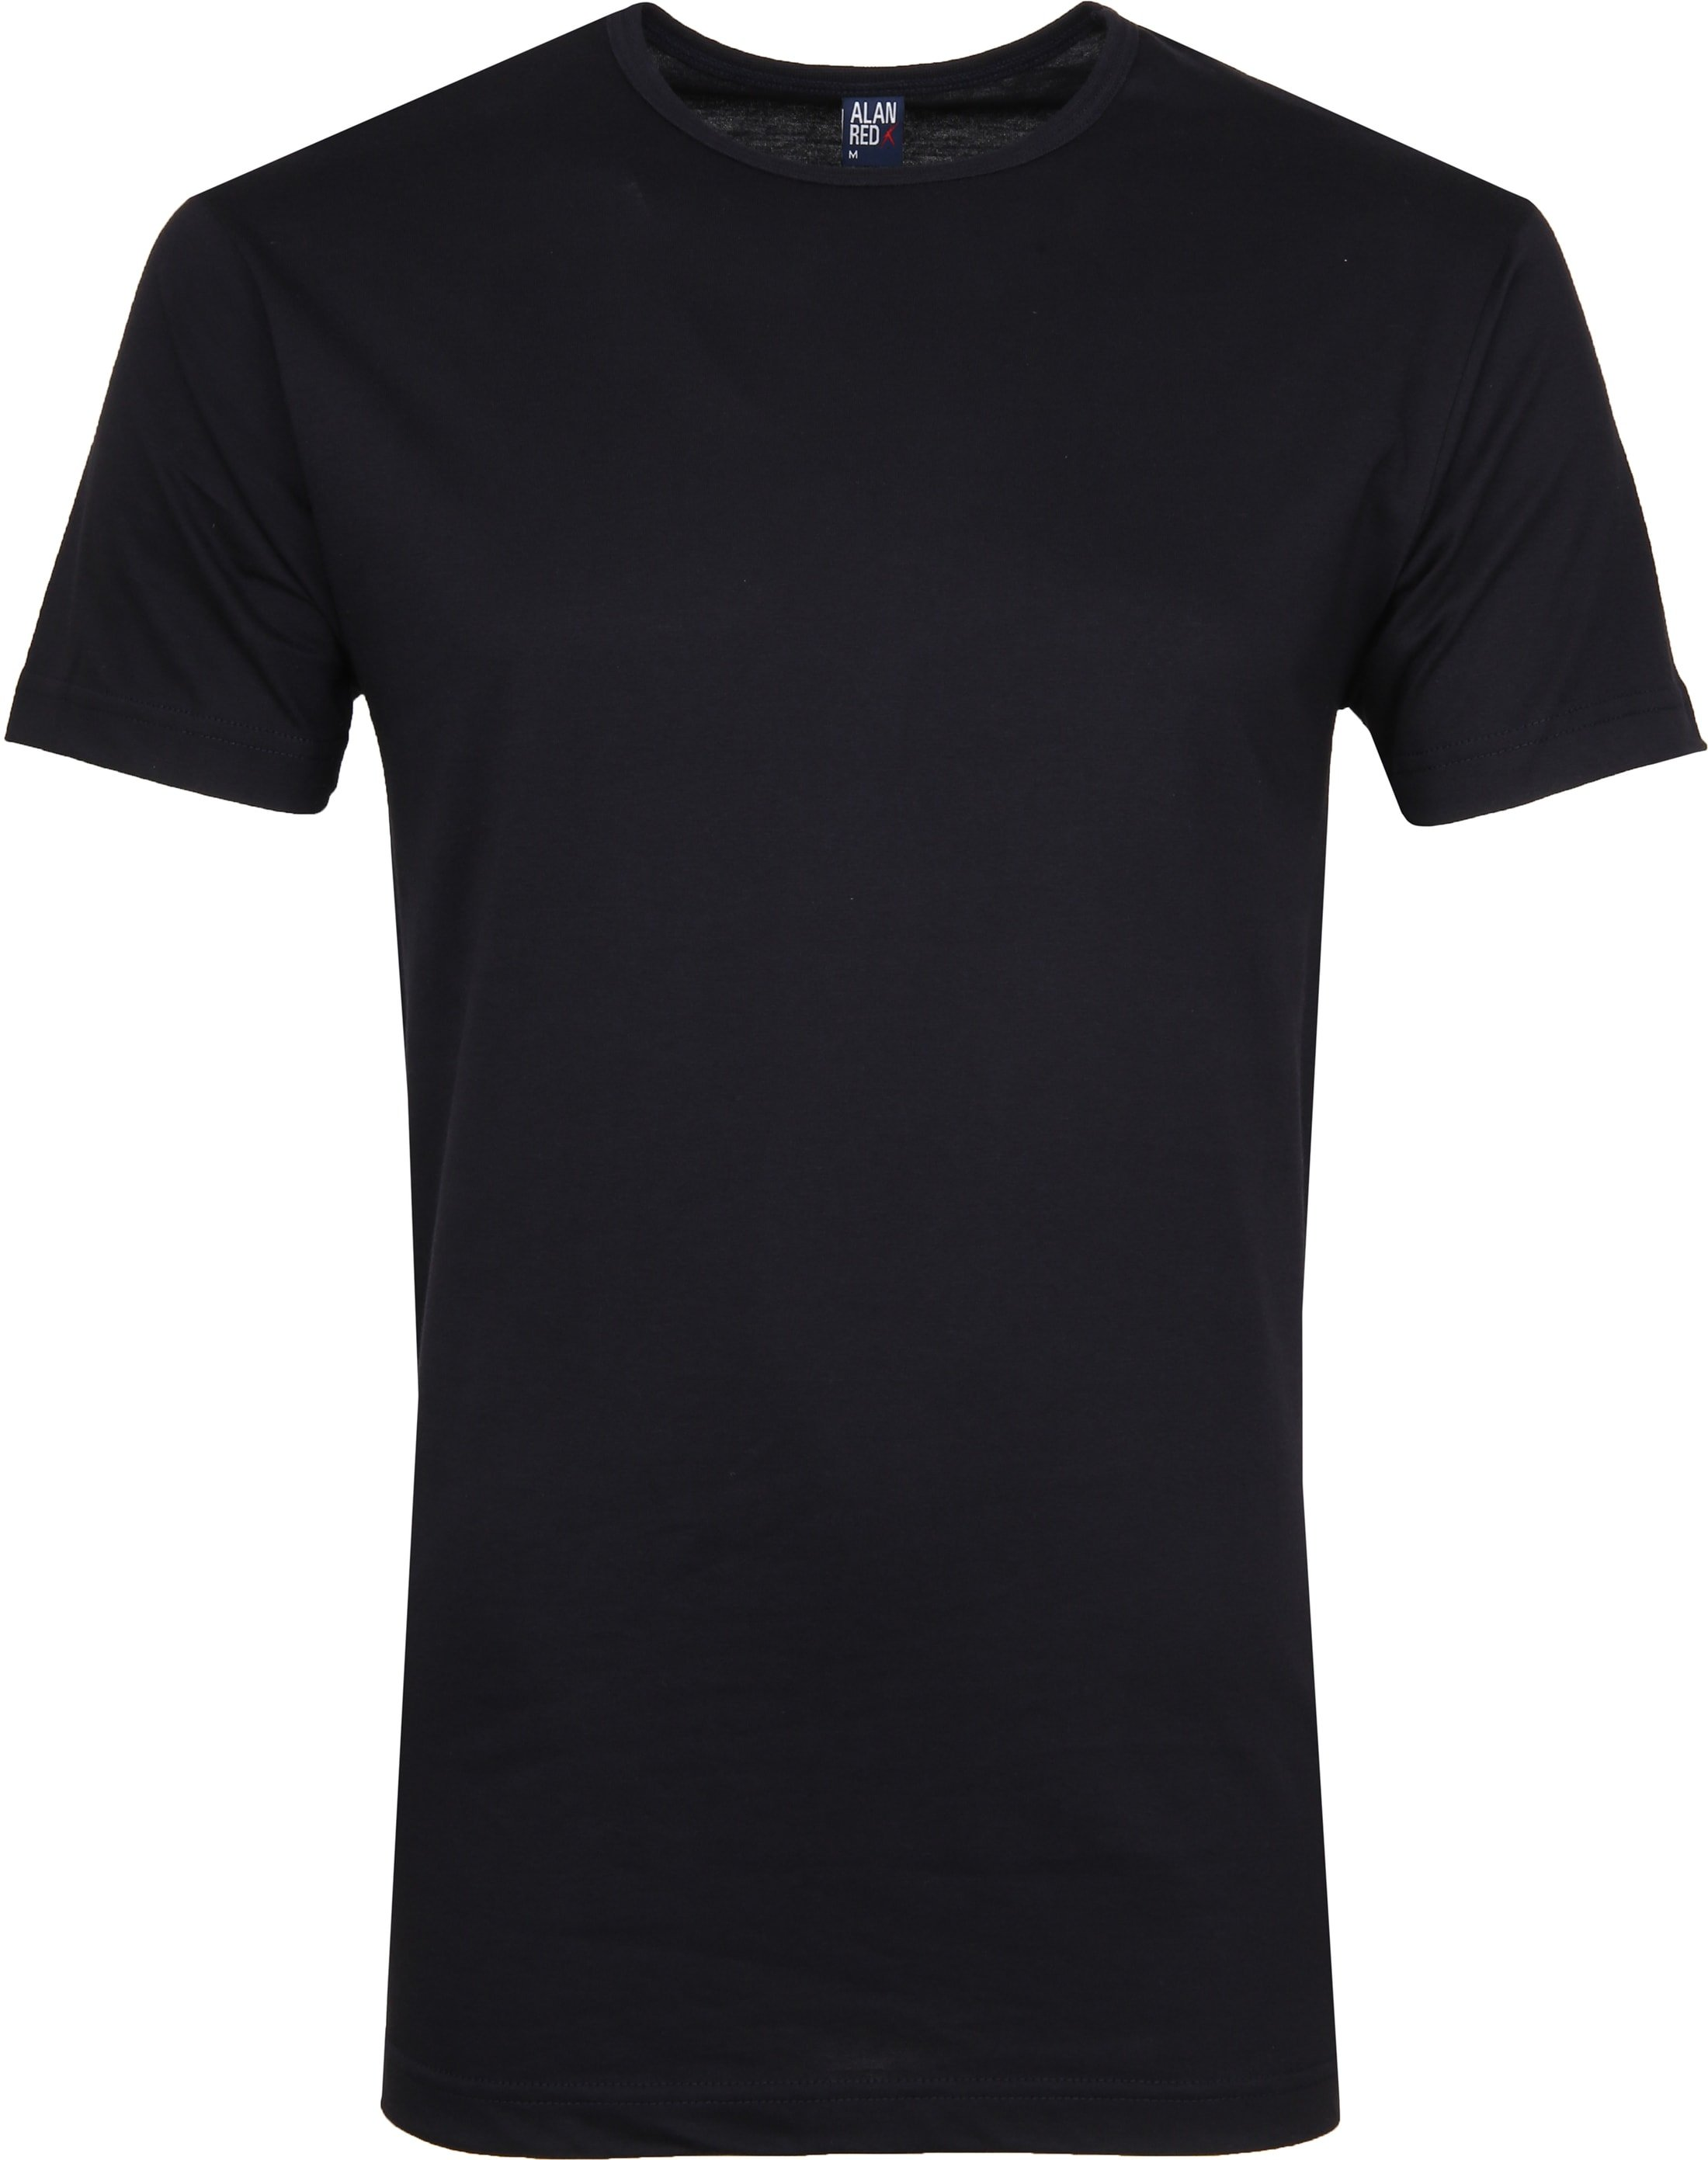 Alan Red Derby O-Hals T-Shirt Navy (2Pack) foto 1